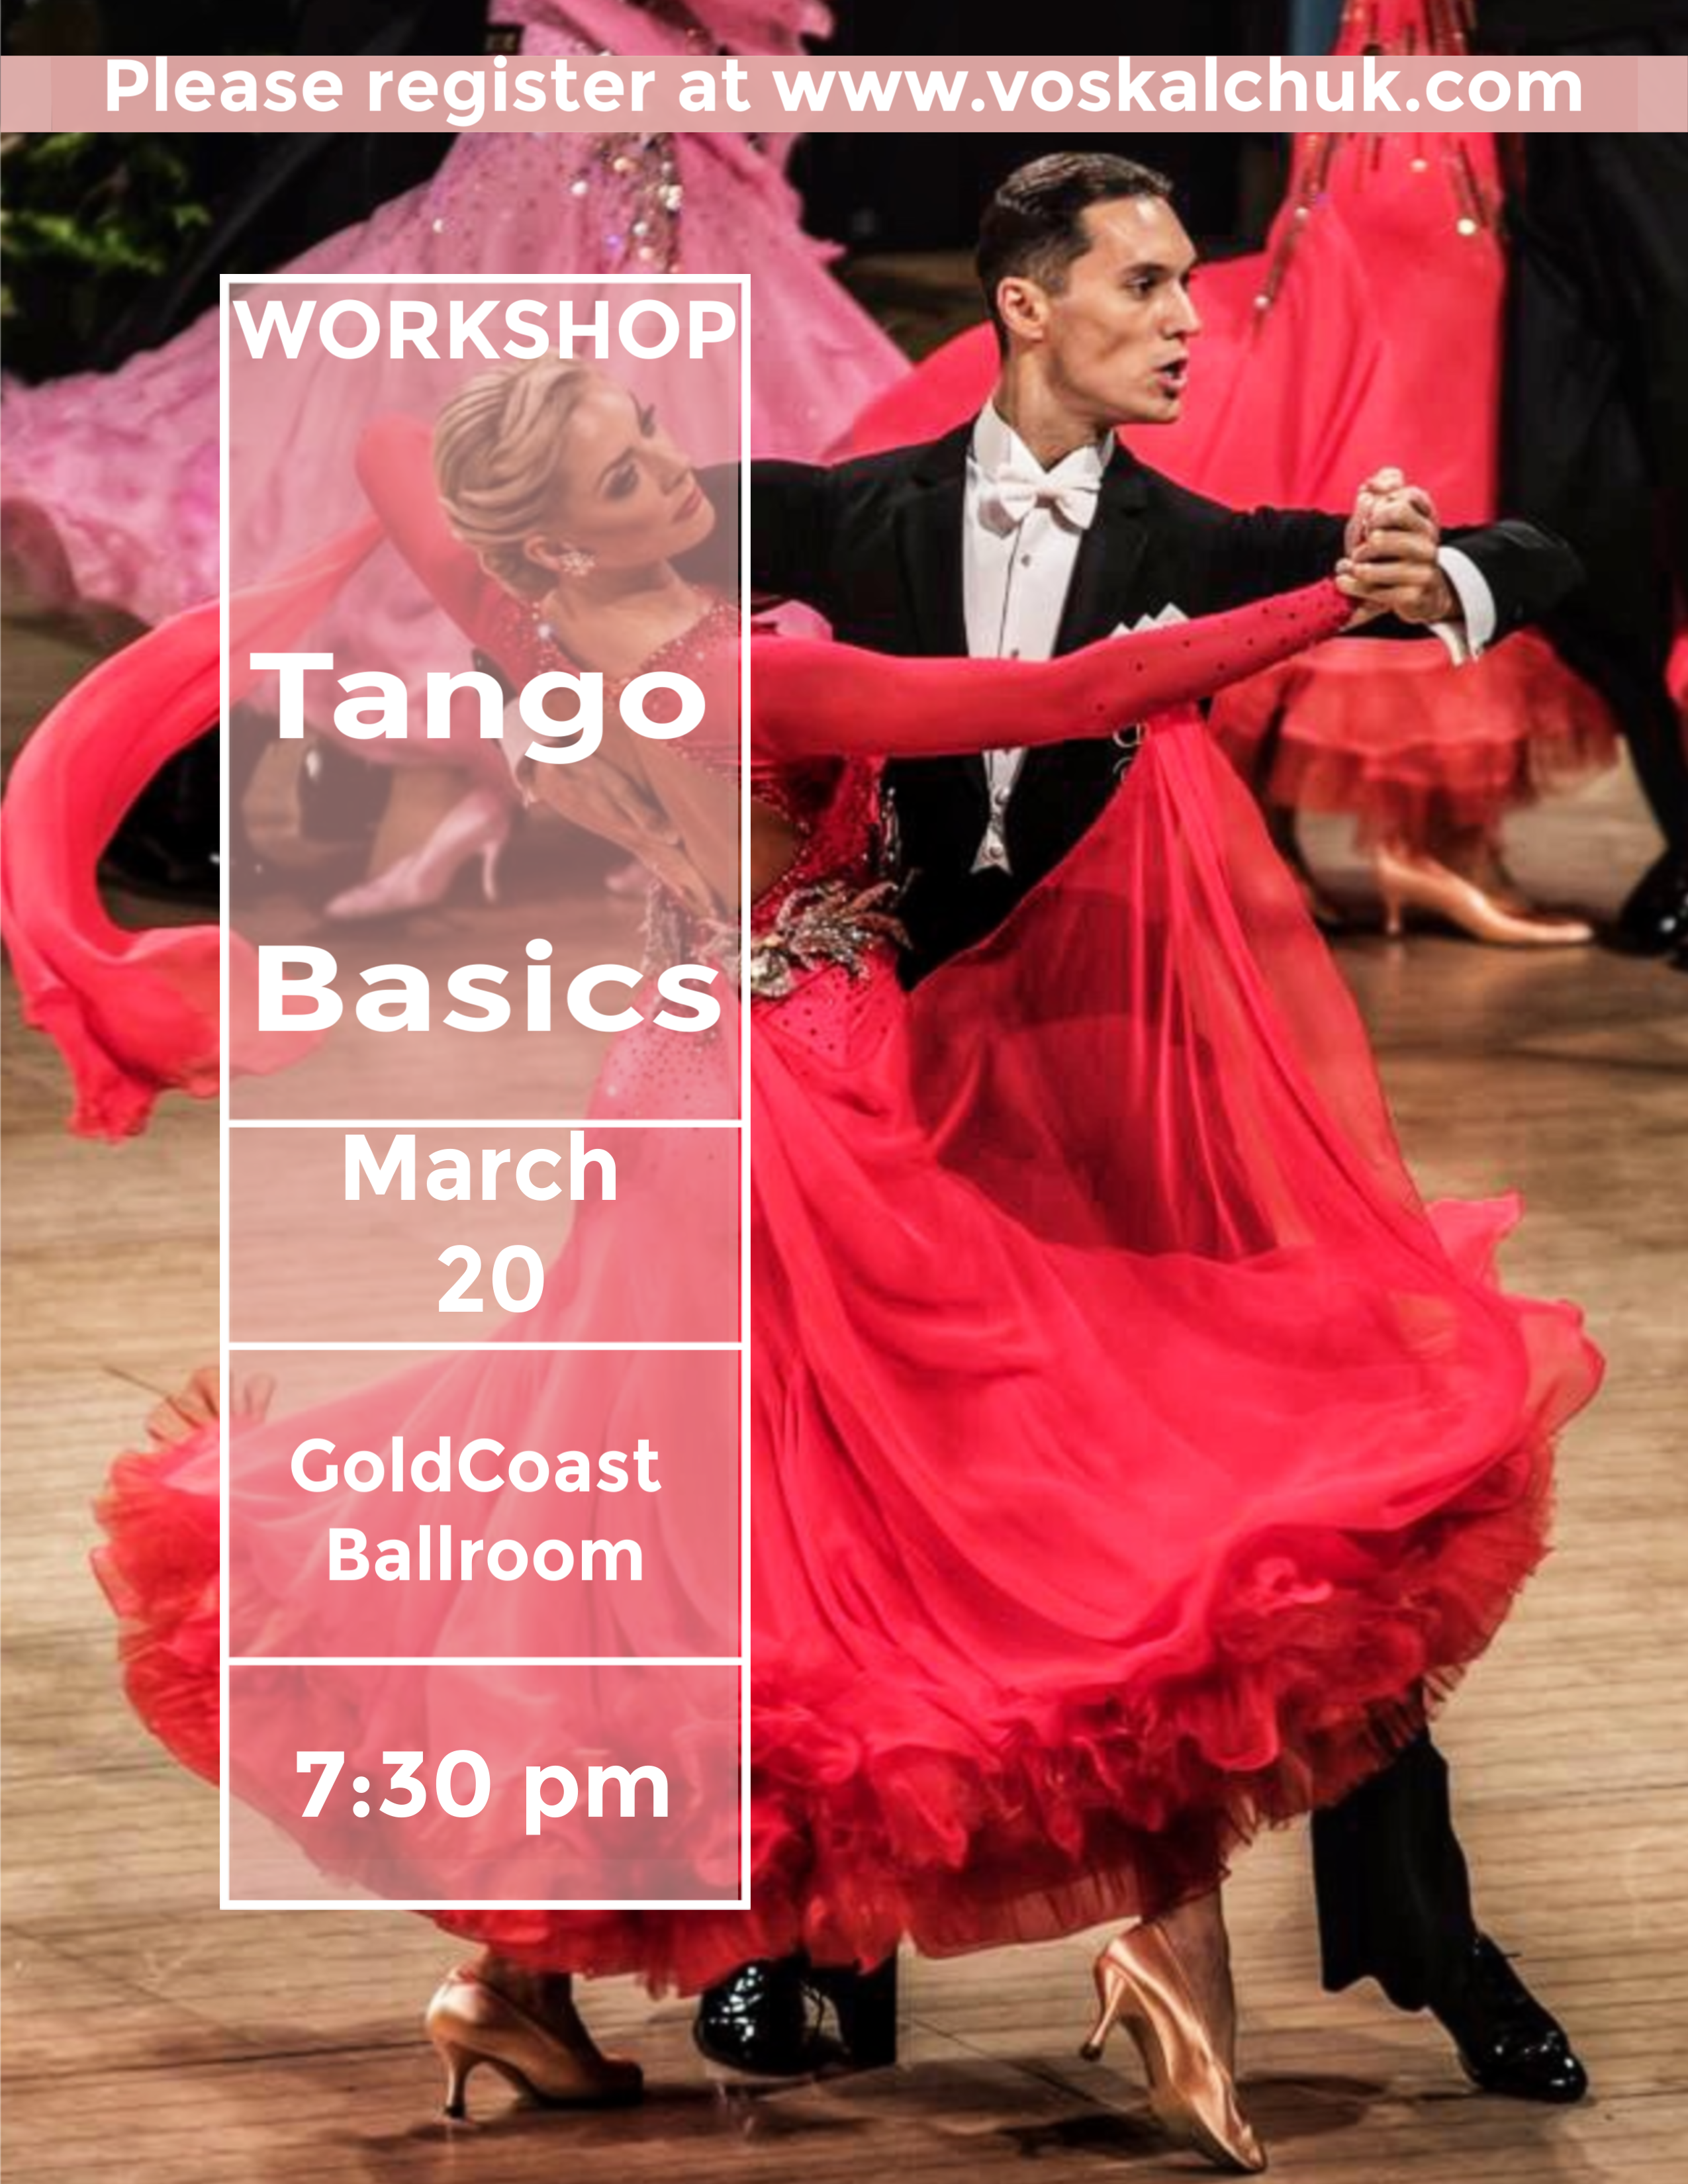 Alexander & Veronika Voskalchuk - March 20, 2019 Workshop - Tango Basics